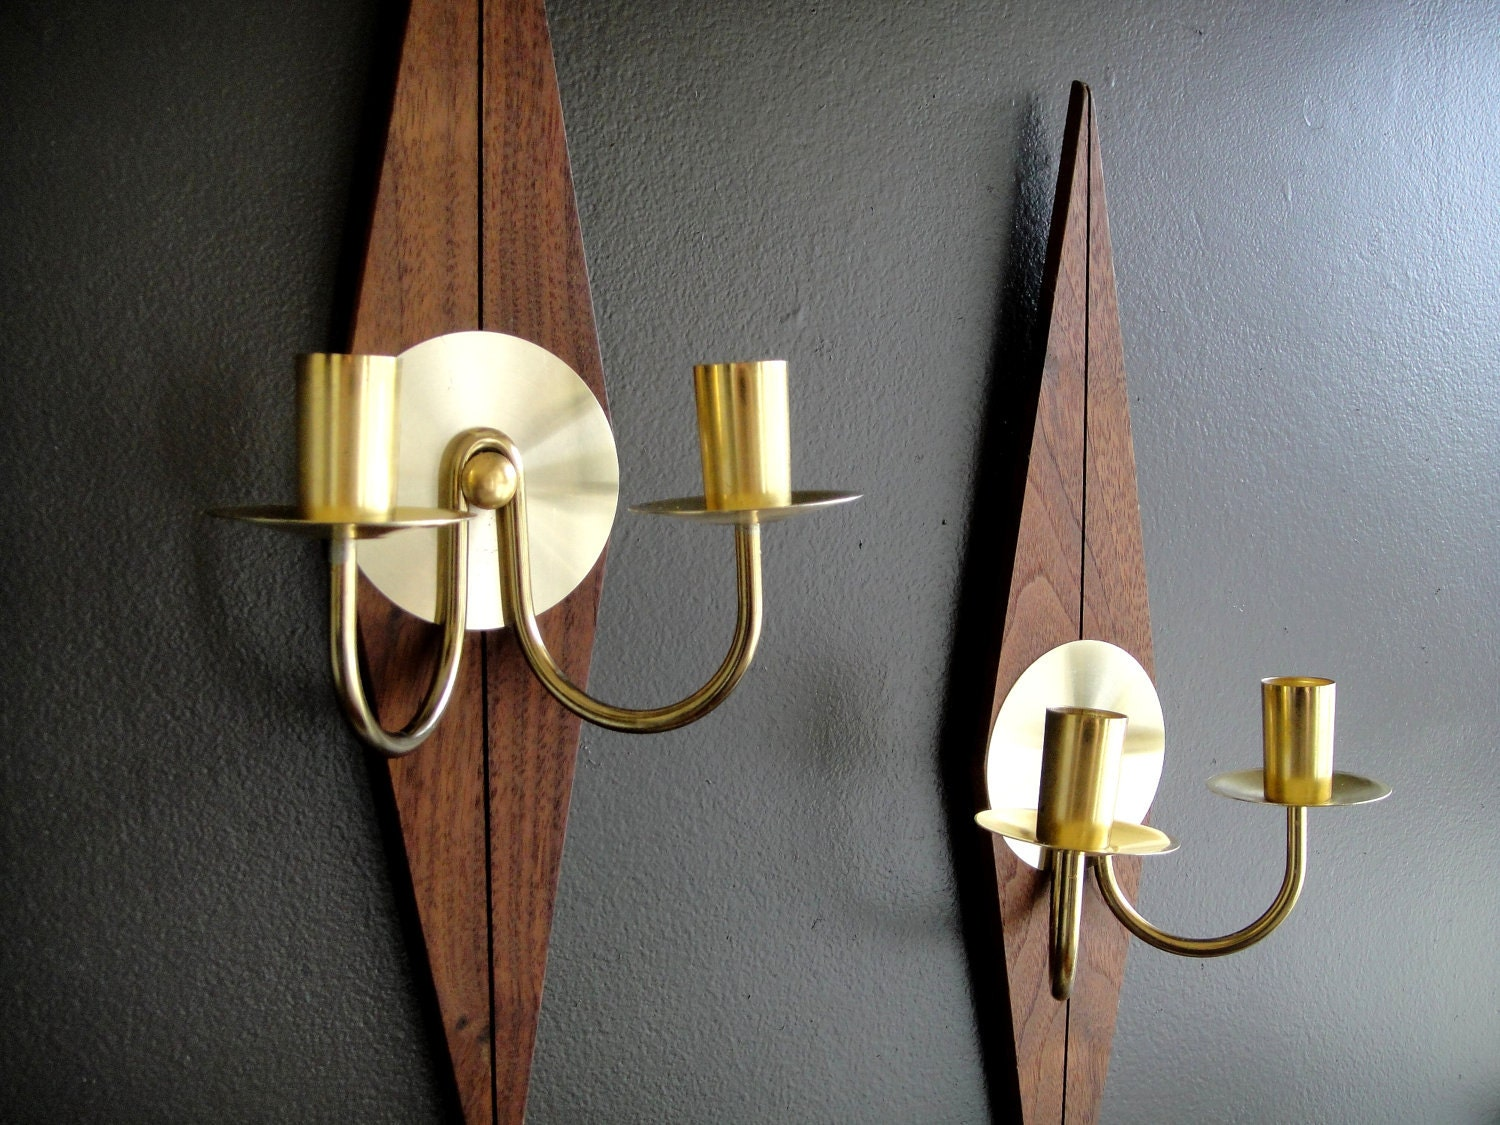 Wall Sconces Mid Century : Teak Wall Sconces Mid Century Modern Danish Design Pair of